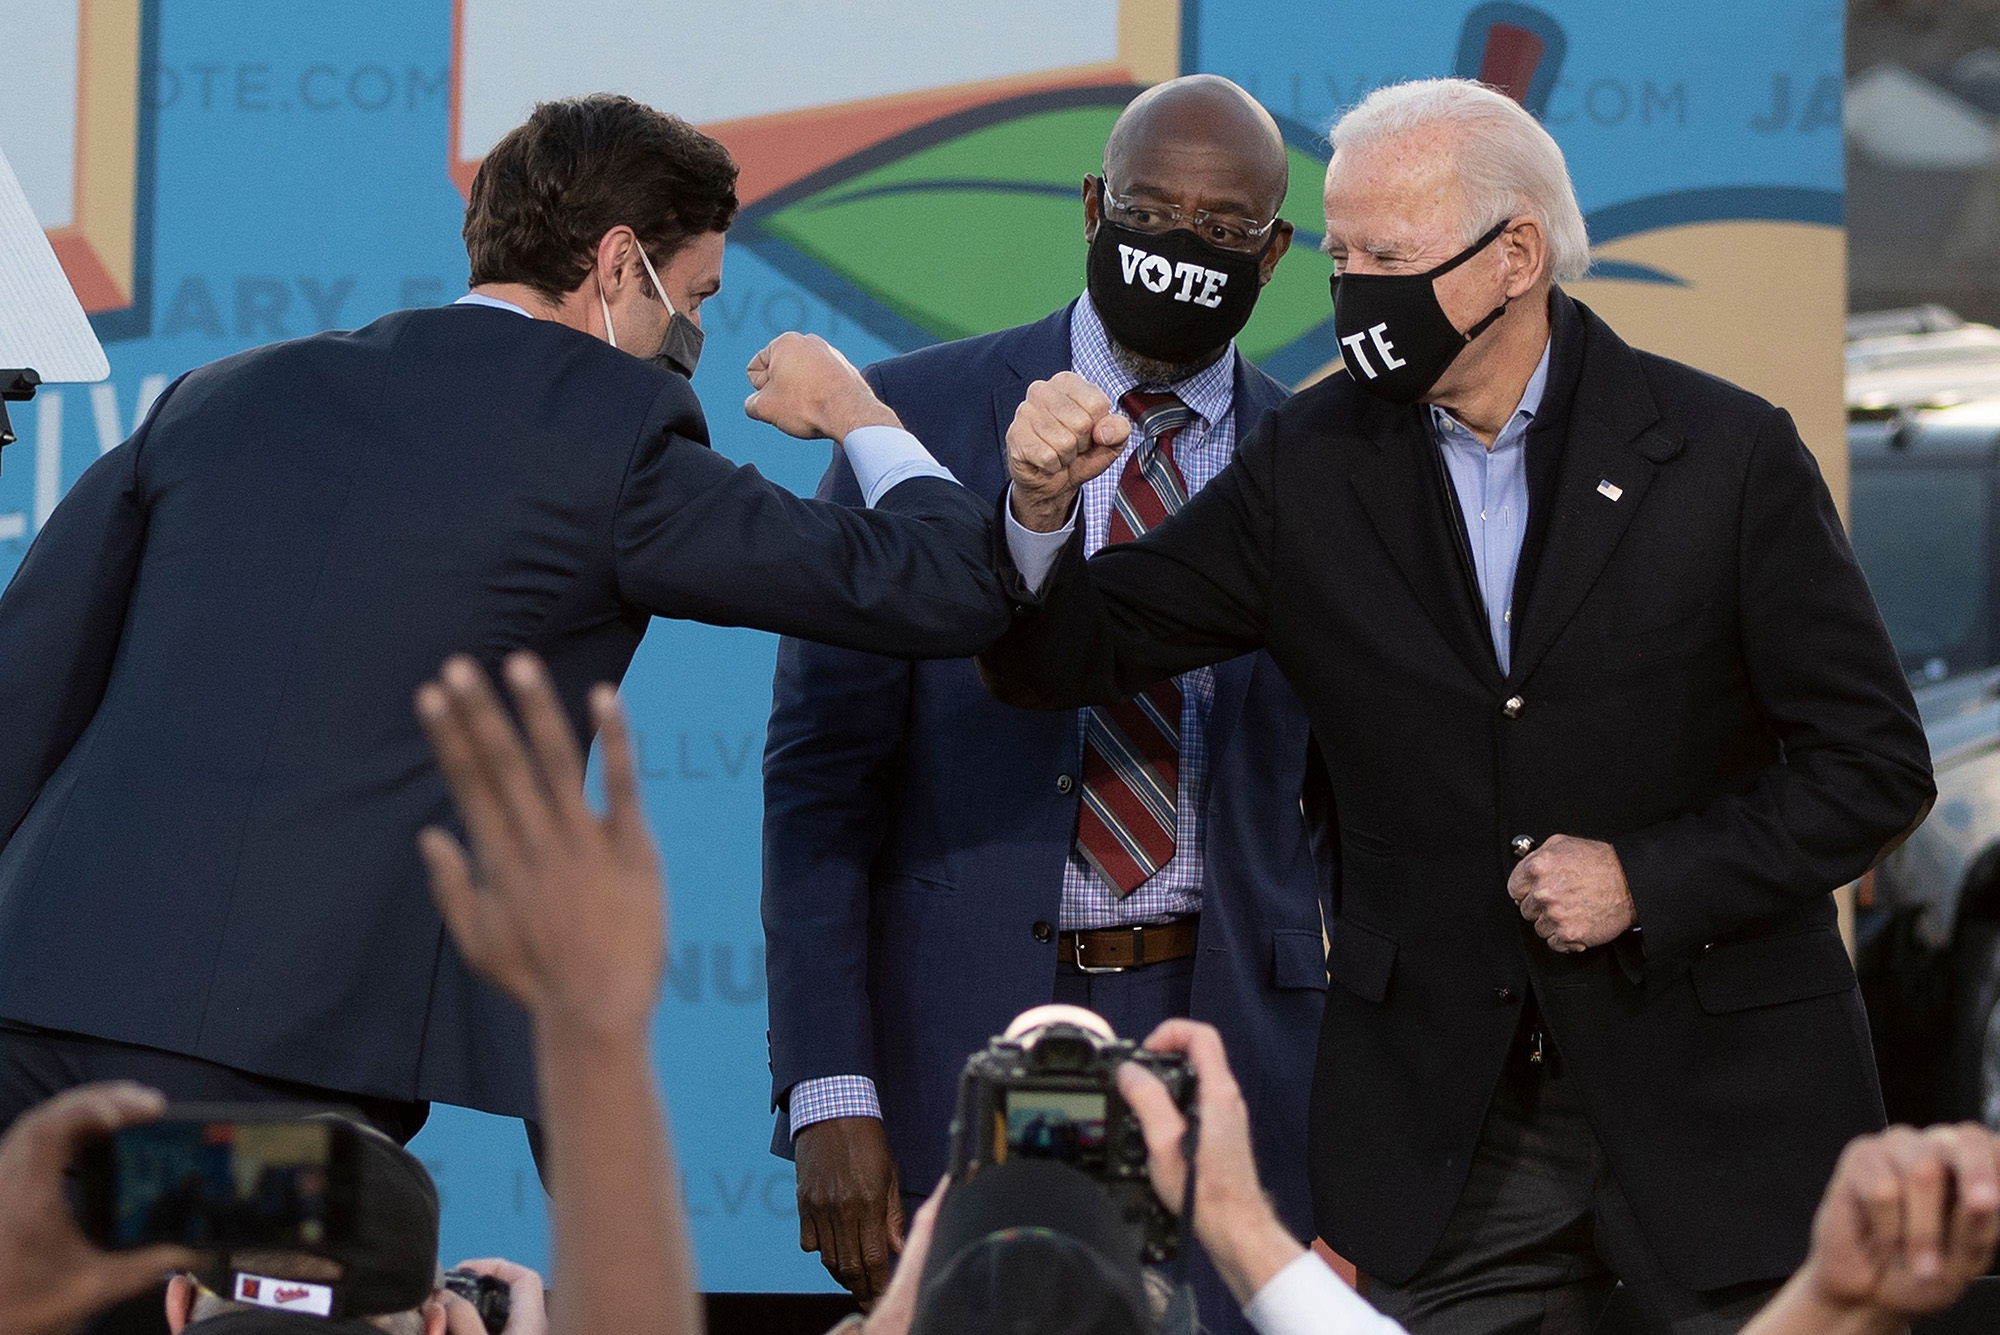 Democratic candidates for Senate Jon Ossoff, Raphael Warnock, and U.S. President-elect Joe Biden bump elbows on stage during a rally outside Center Parc Stadium in Atlanta, Georgia, on January 4.